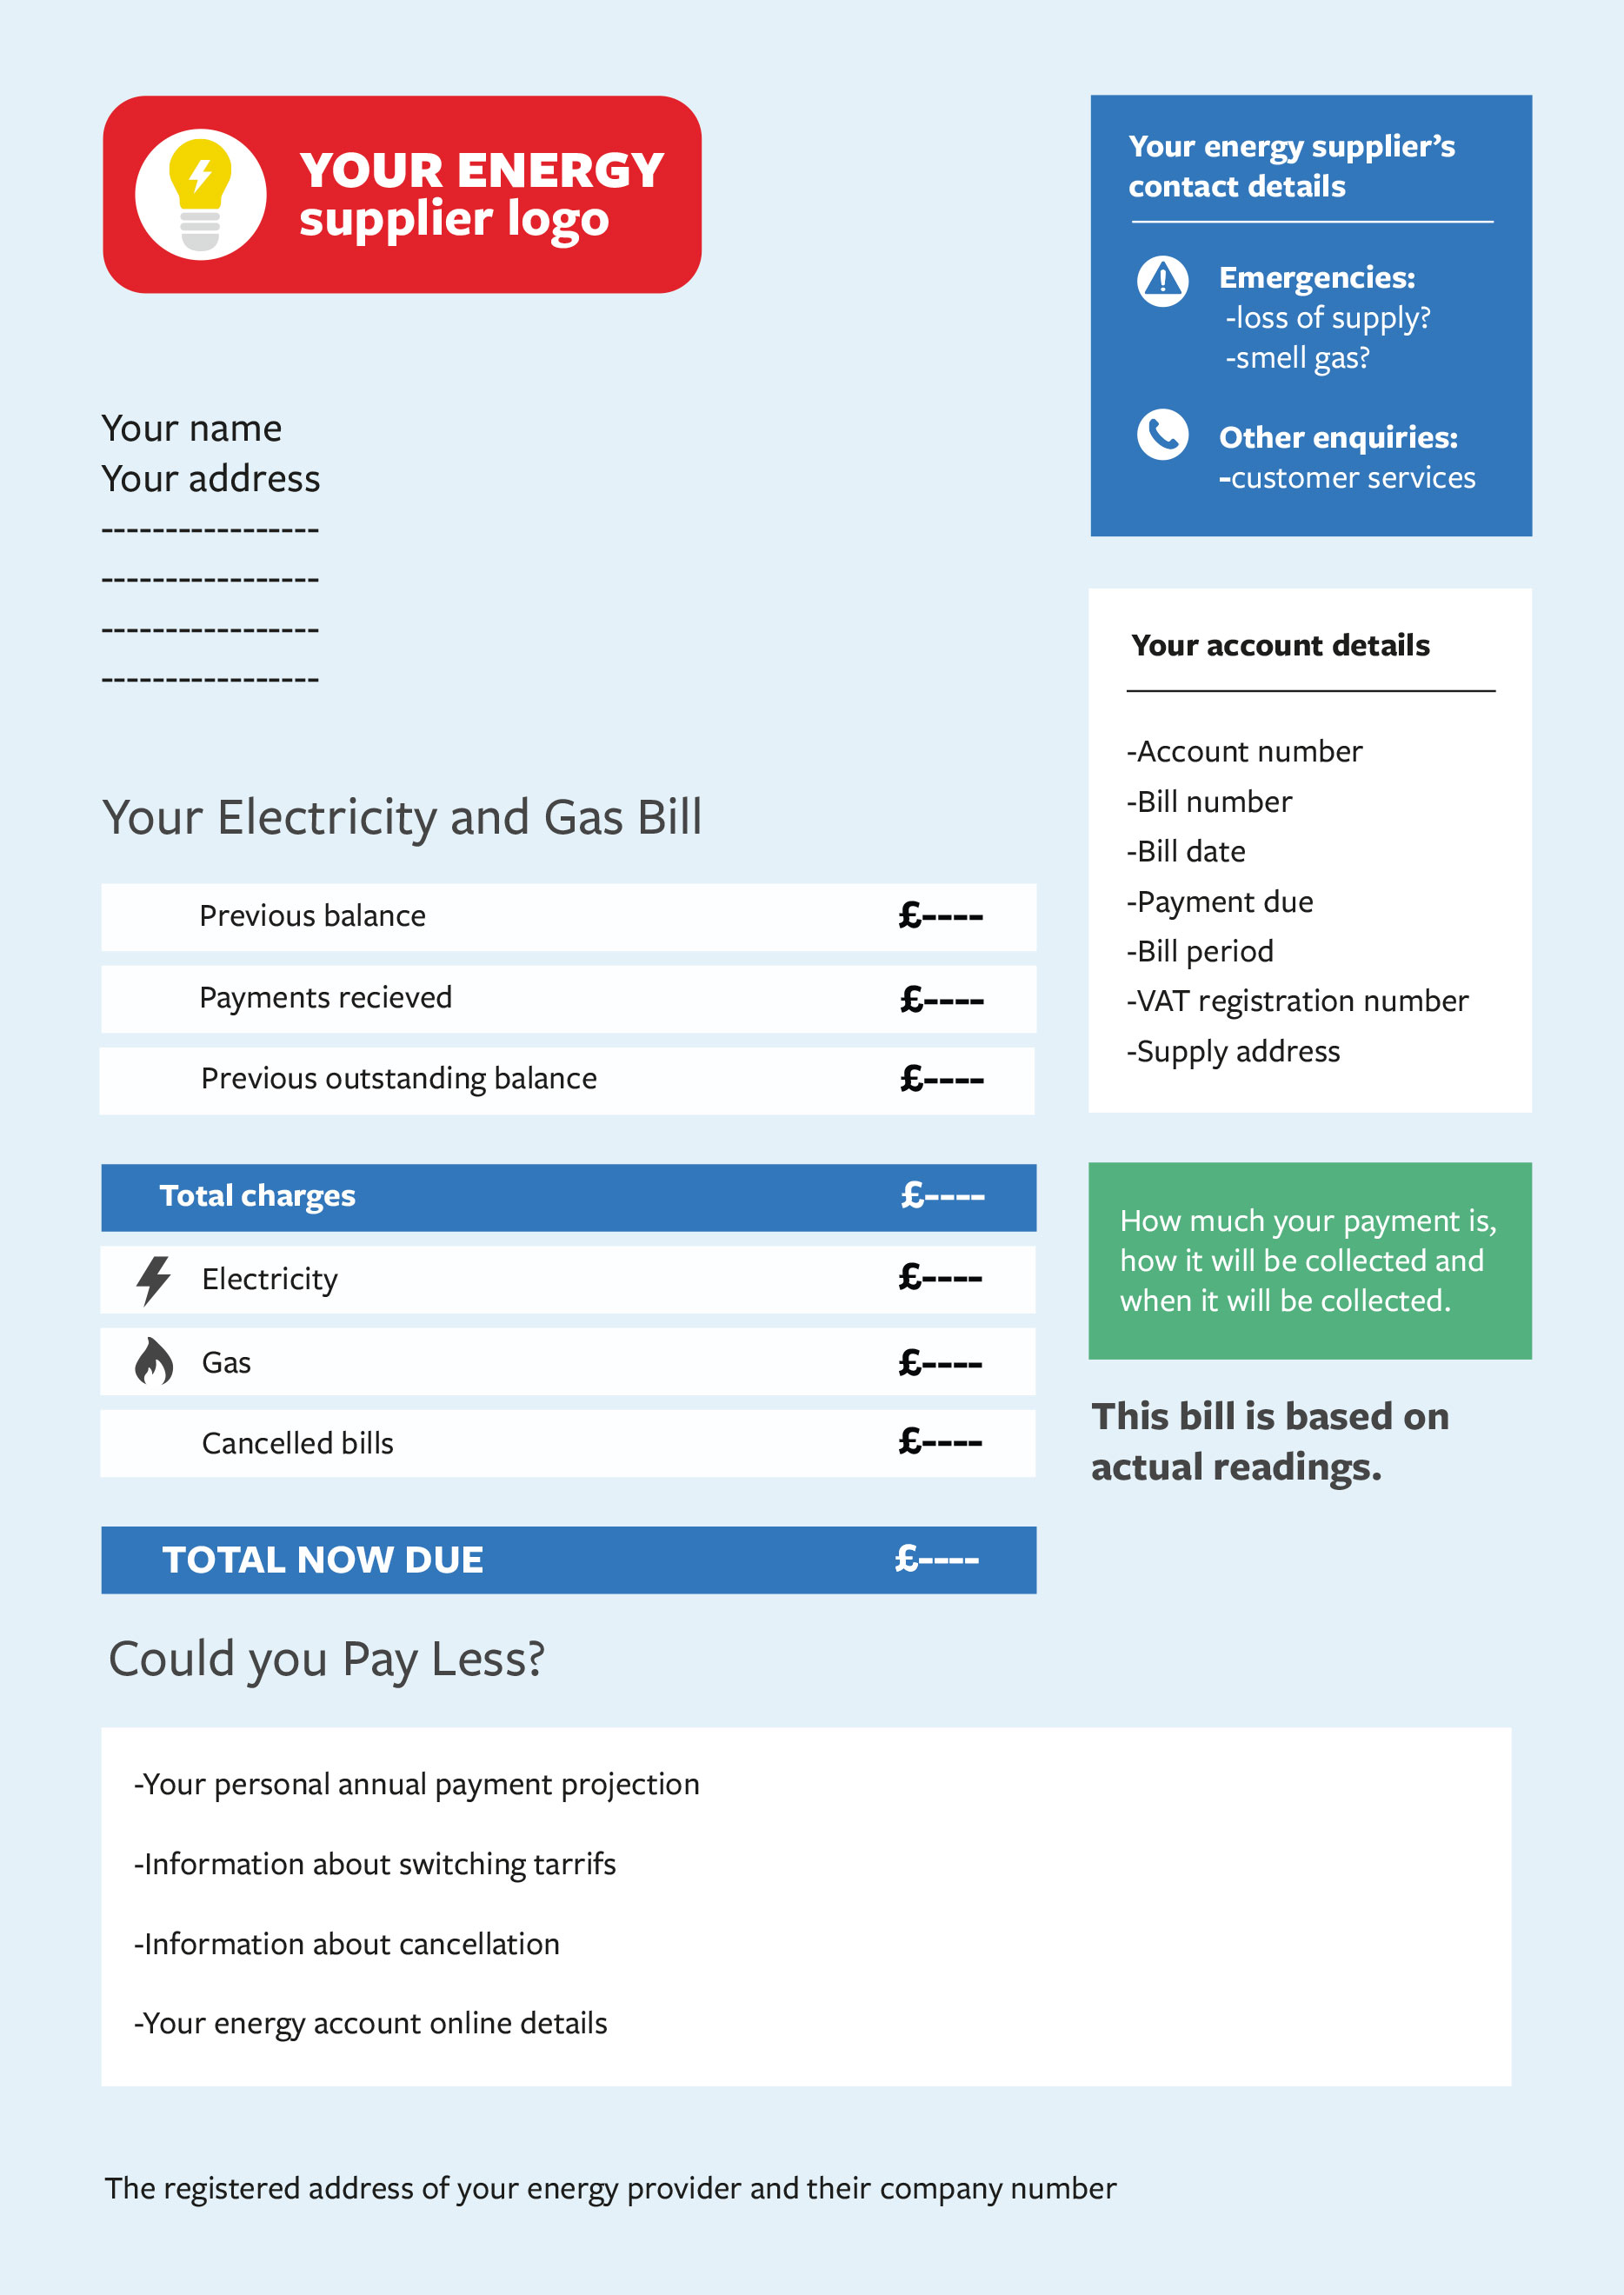 An example of an energy bill.